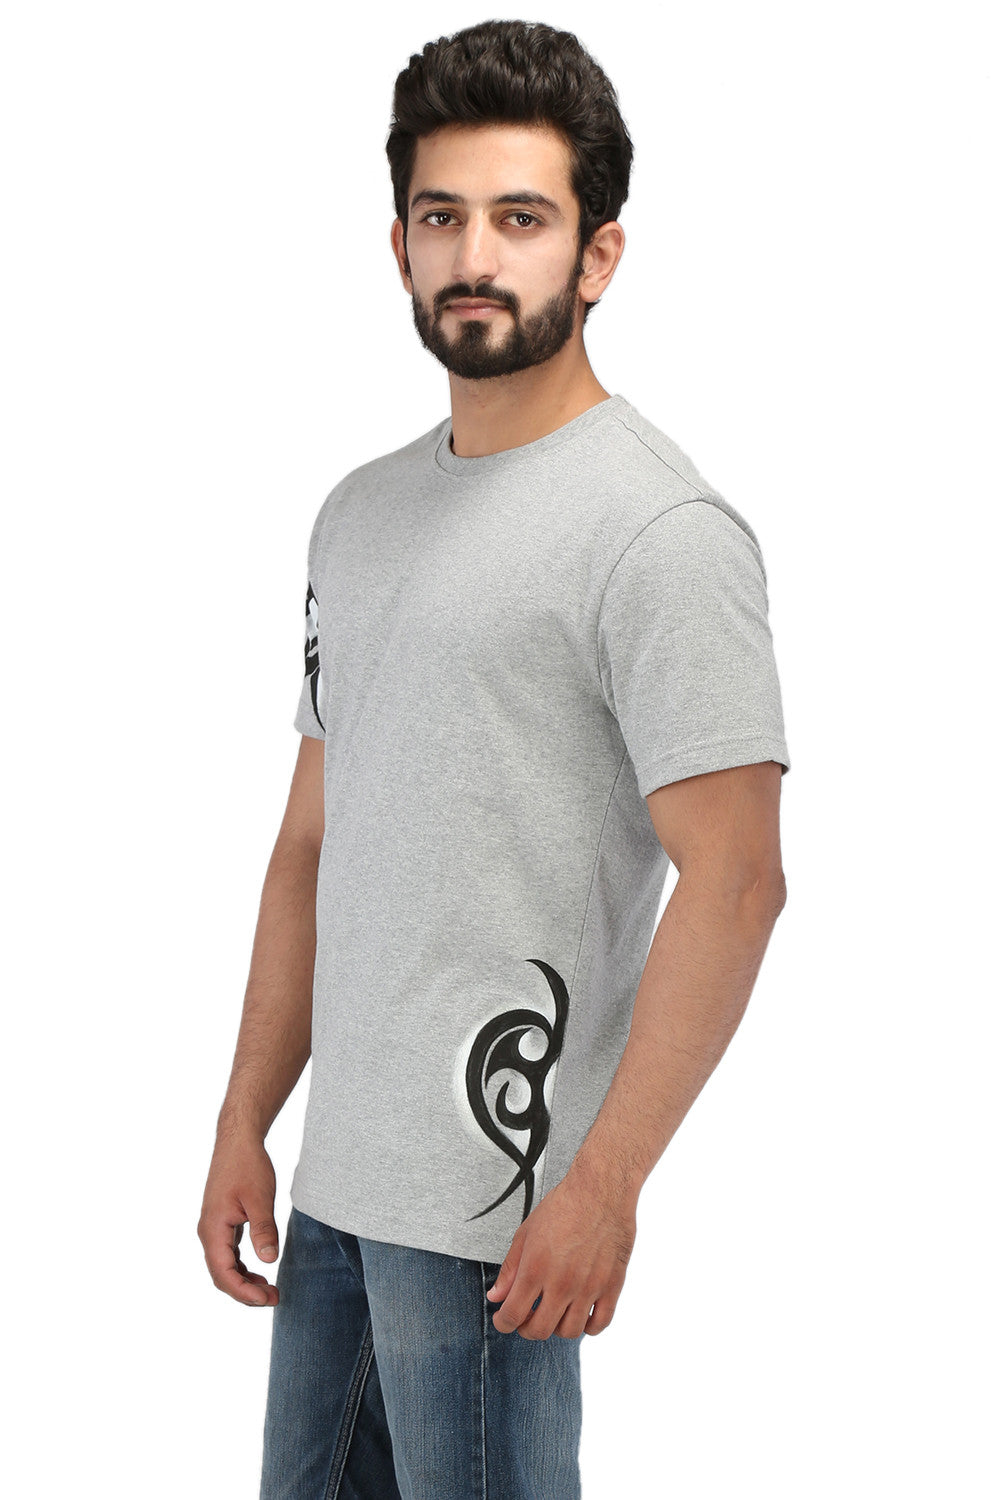 Hand-painted Tribal Muse Grey T-shirt - Rang Rage  - 3